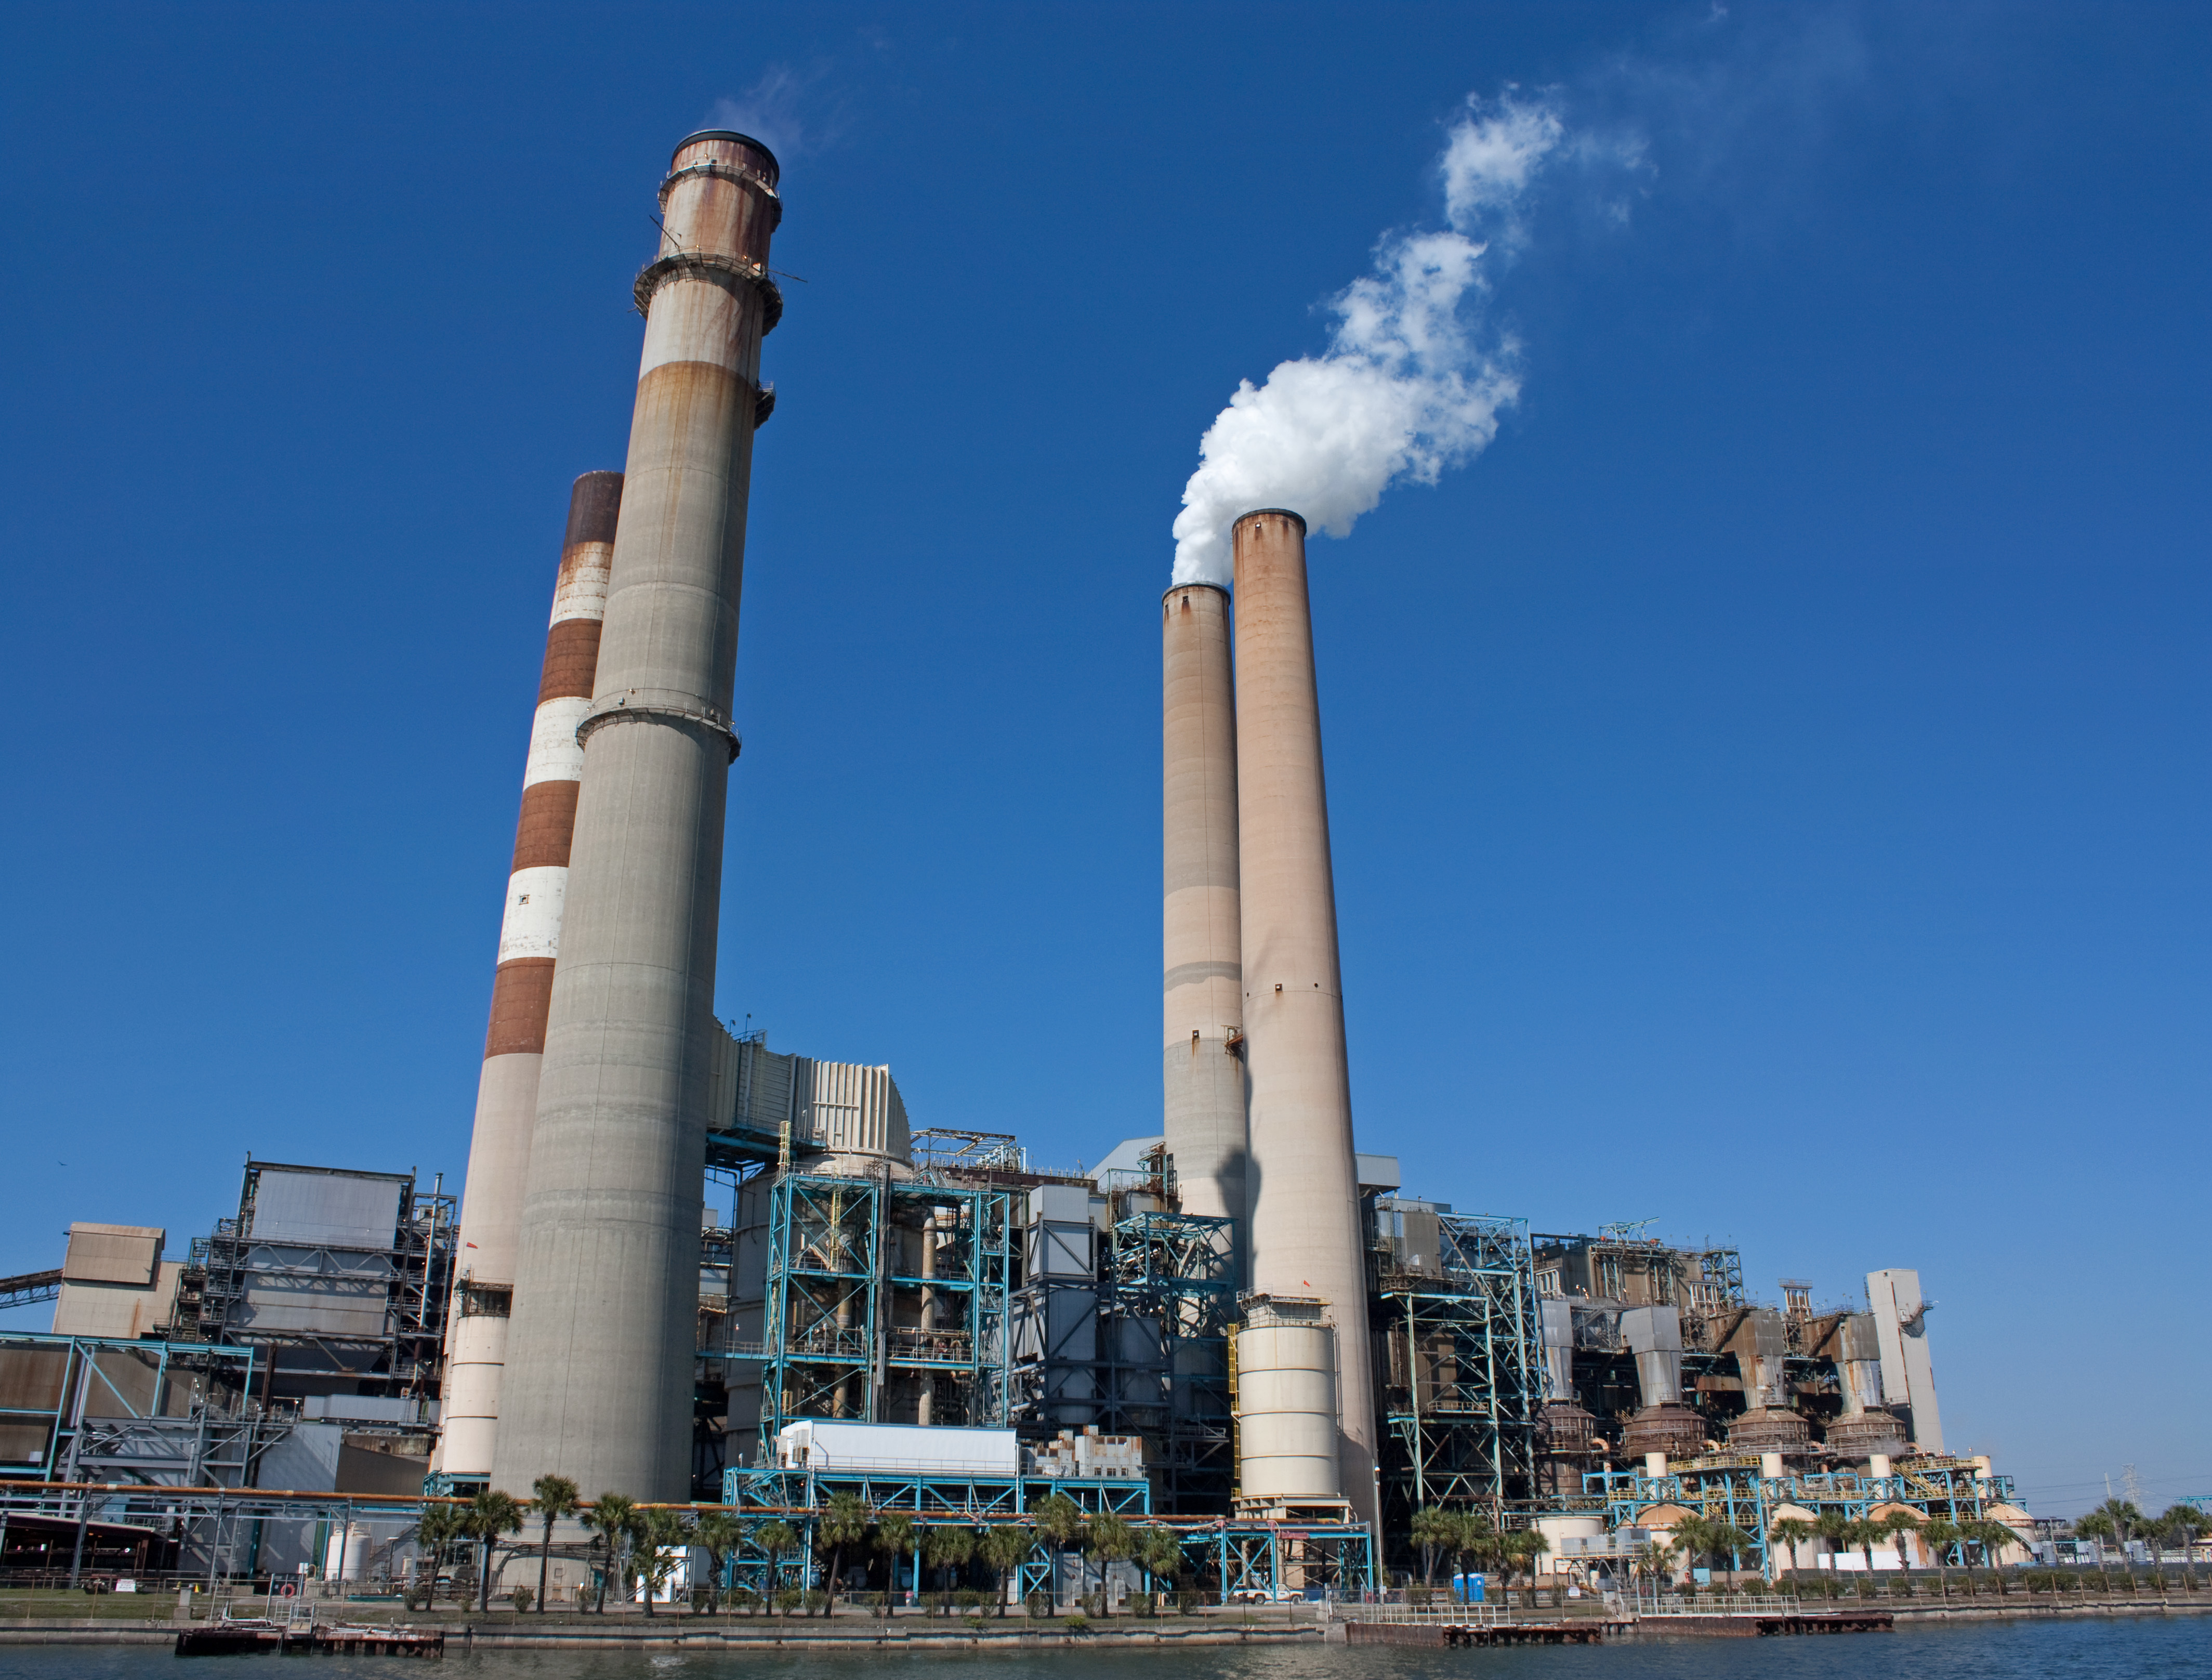 A fossil fuel power station in Apollo Beach, Florida.